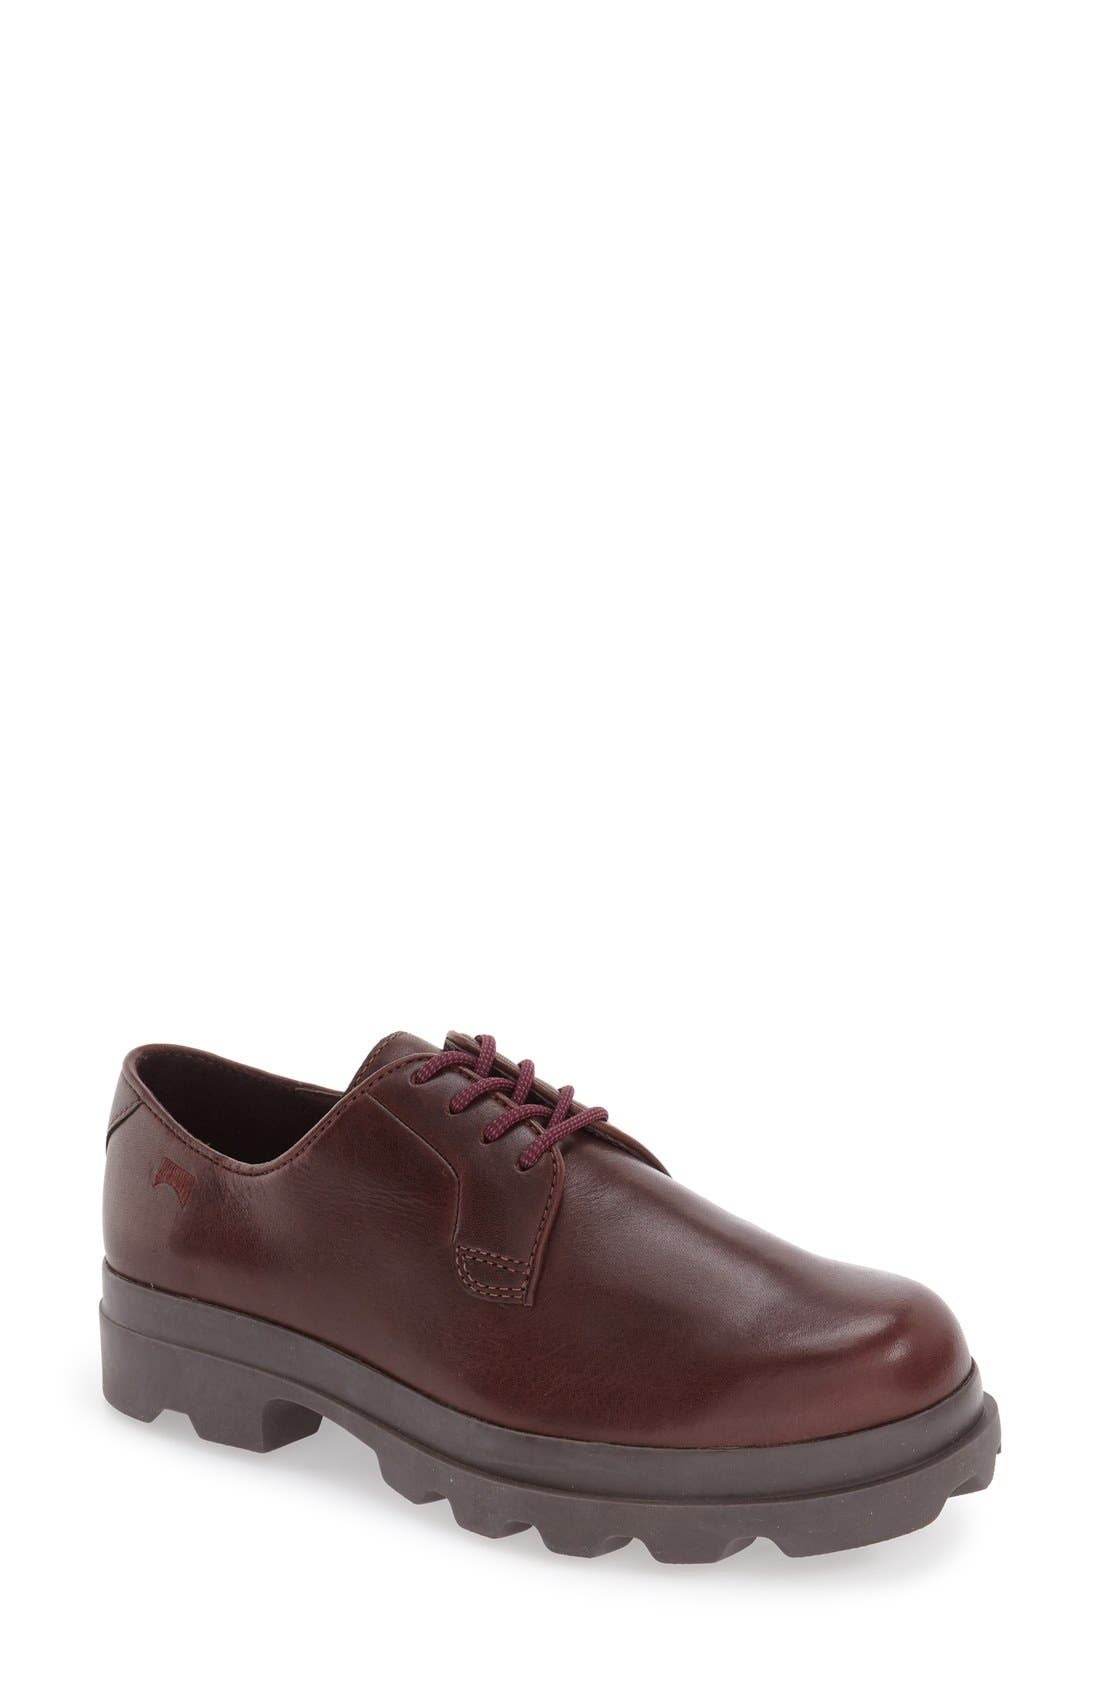 Alternate Image 1 Selected - Camper '1980' Lace-Up Oxford (Women)